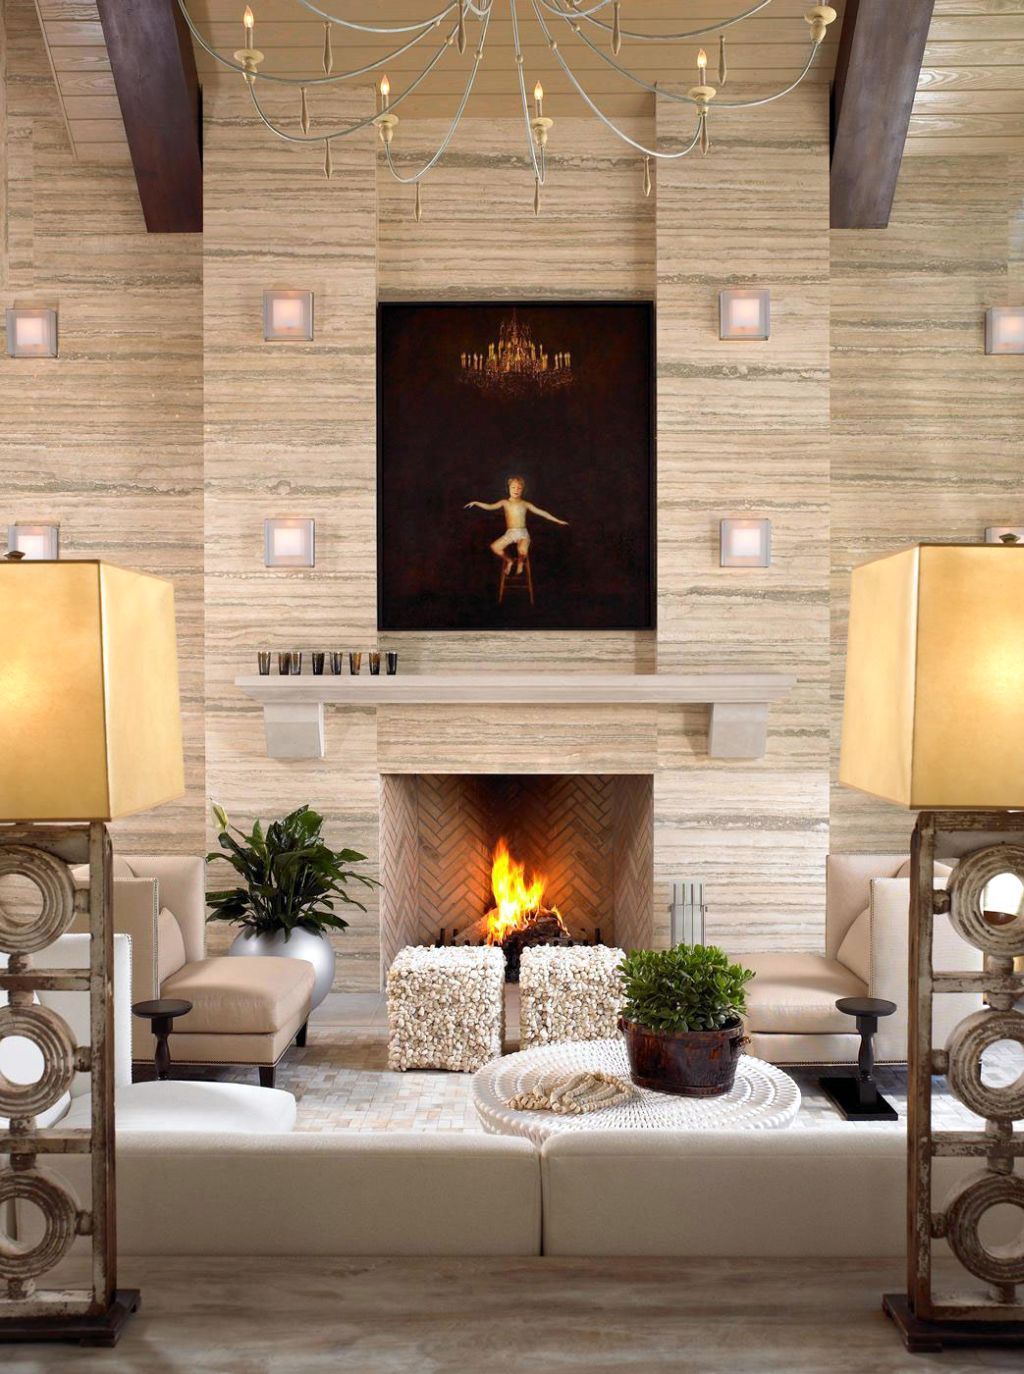 Modern Fireplace Design Ideas - Interior | Home Interior & Decorating